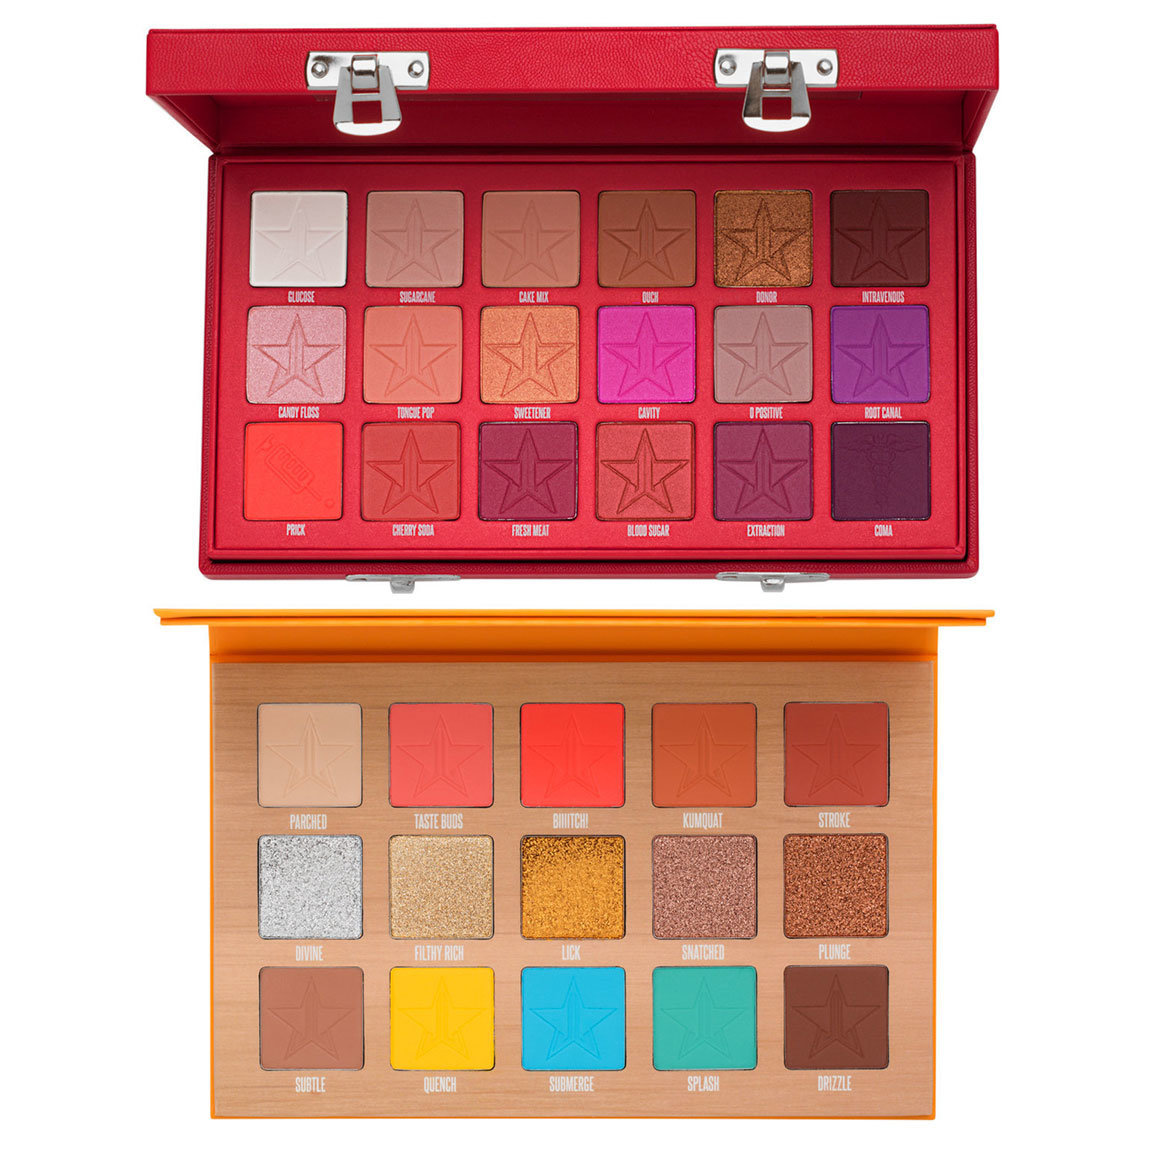 Jeffree Star Cosmetics Thirsty & Blood Sugar Palette Bundle product smear.